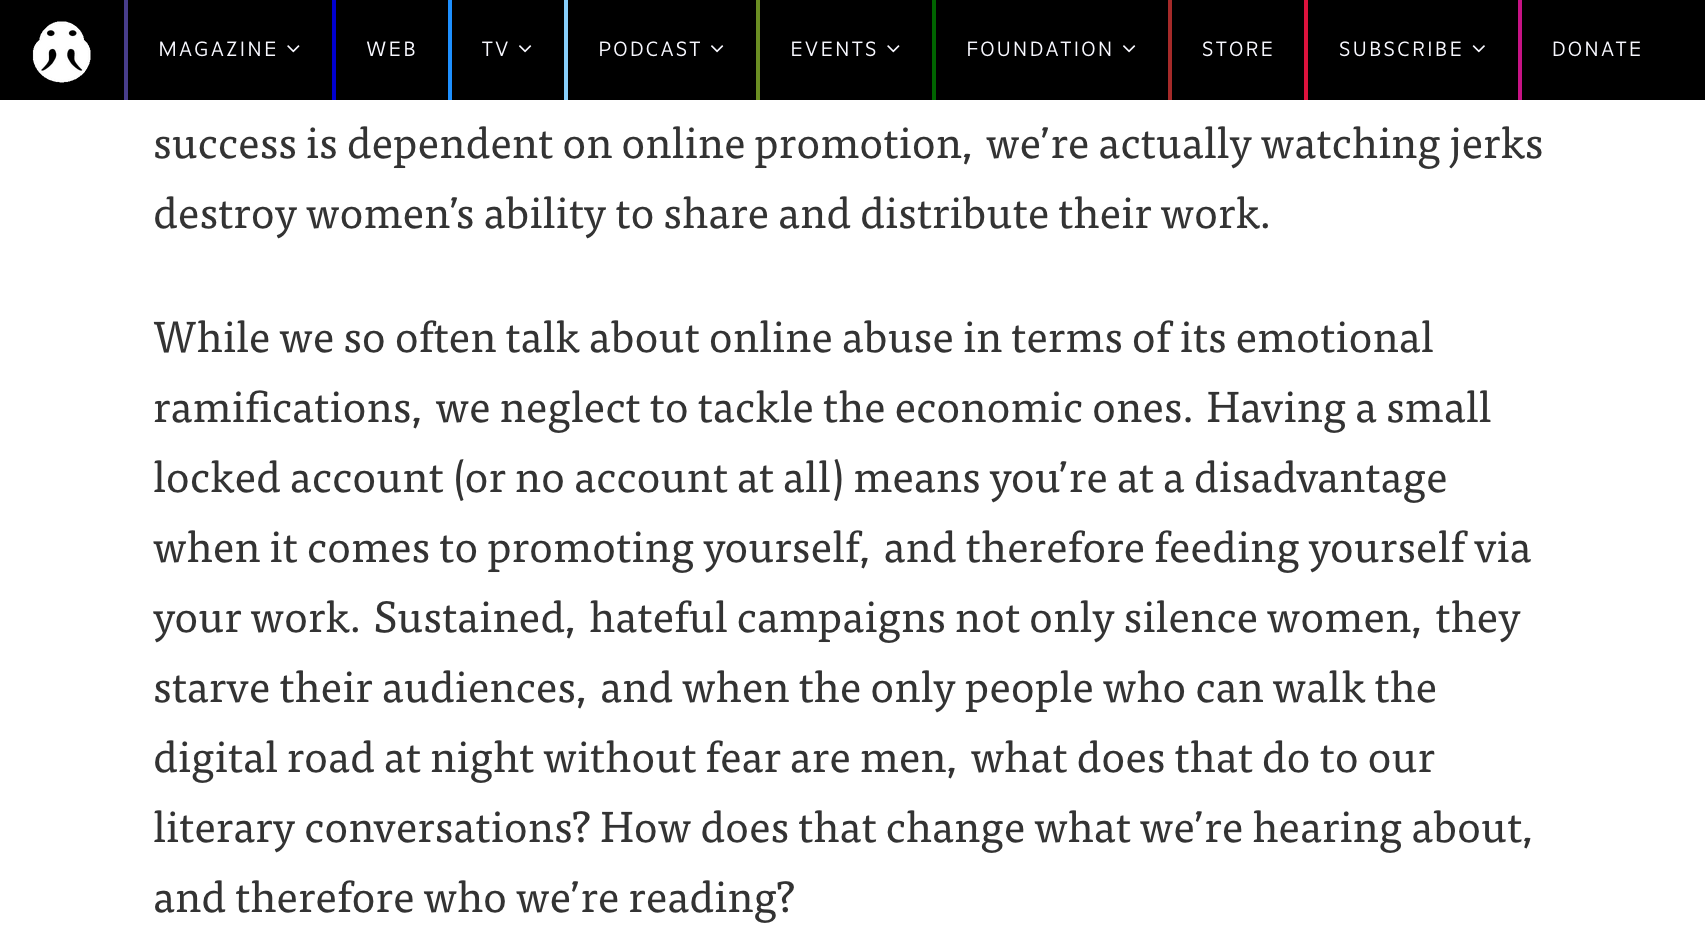 """""""While we so often talk about online abuse in terms of its emotional ramifications, we neglect to tackle the economic ones. Having a small locked account (or no account at all) means you're at a disadvantage when it comes to promoting yourself, and therefore feeding yourself via your work. Sustained, hateful campaigns not only silence women, they starve their audiences, and when the only people who can walk the digital road at night without fear are men, what does that do to our literary conversations? How does that change what we're hearing about, and therefore who we're reading?"""""""